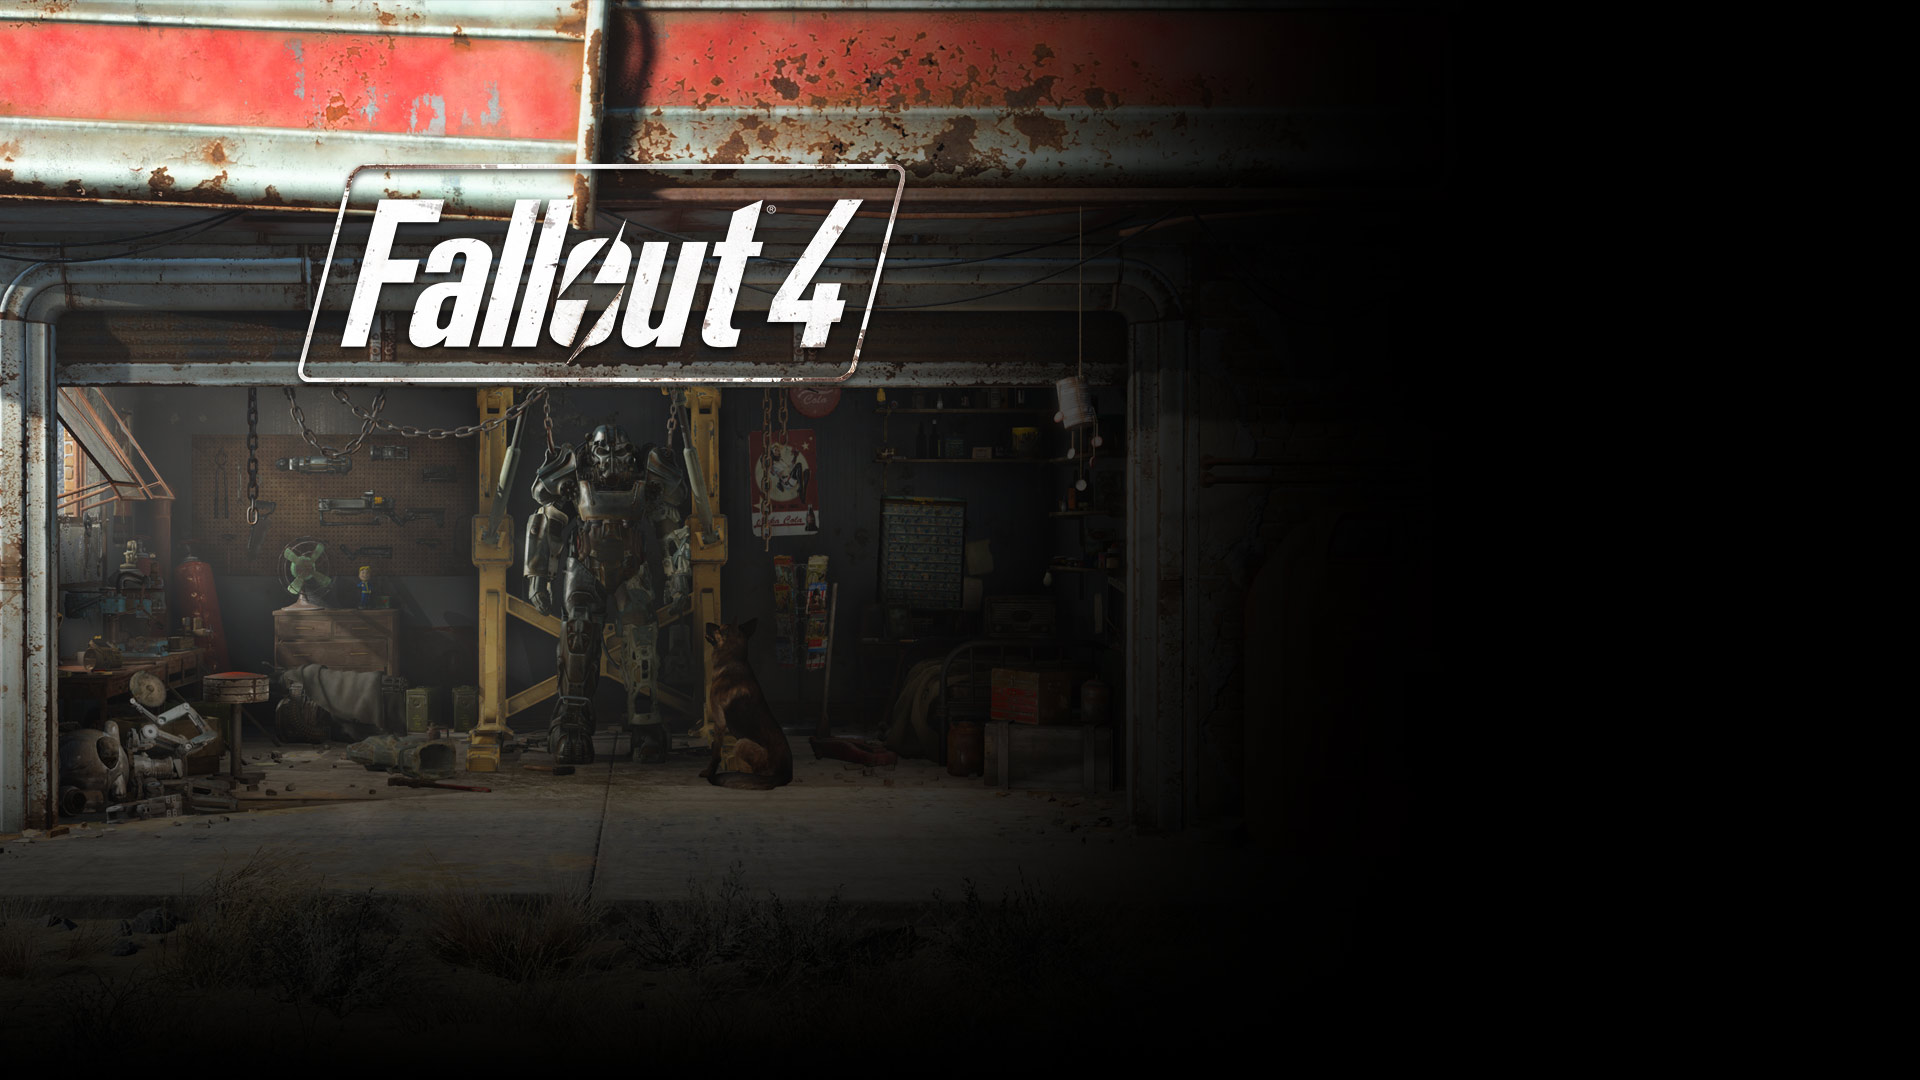 Fallout 4, game image of a mech suit in a garage